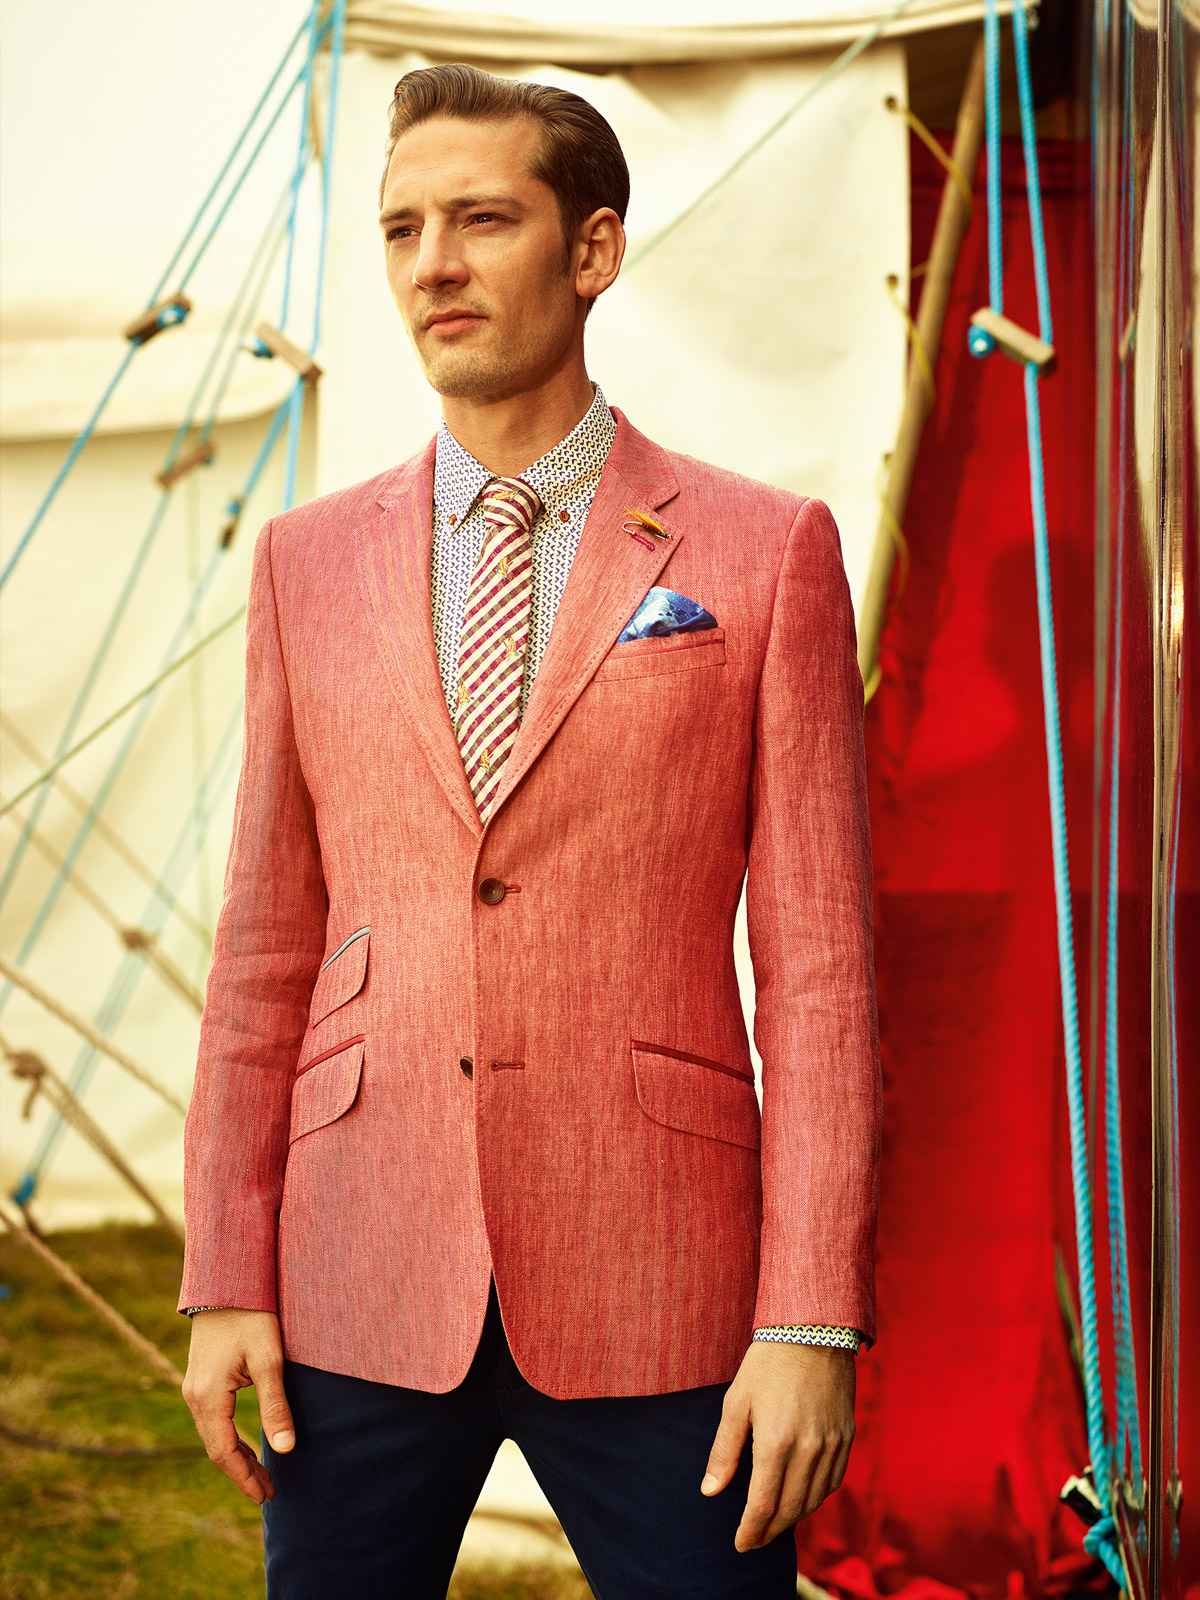 Ted Baker Spring/Summer Menswear 14 collection